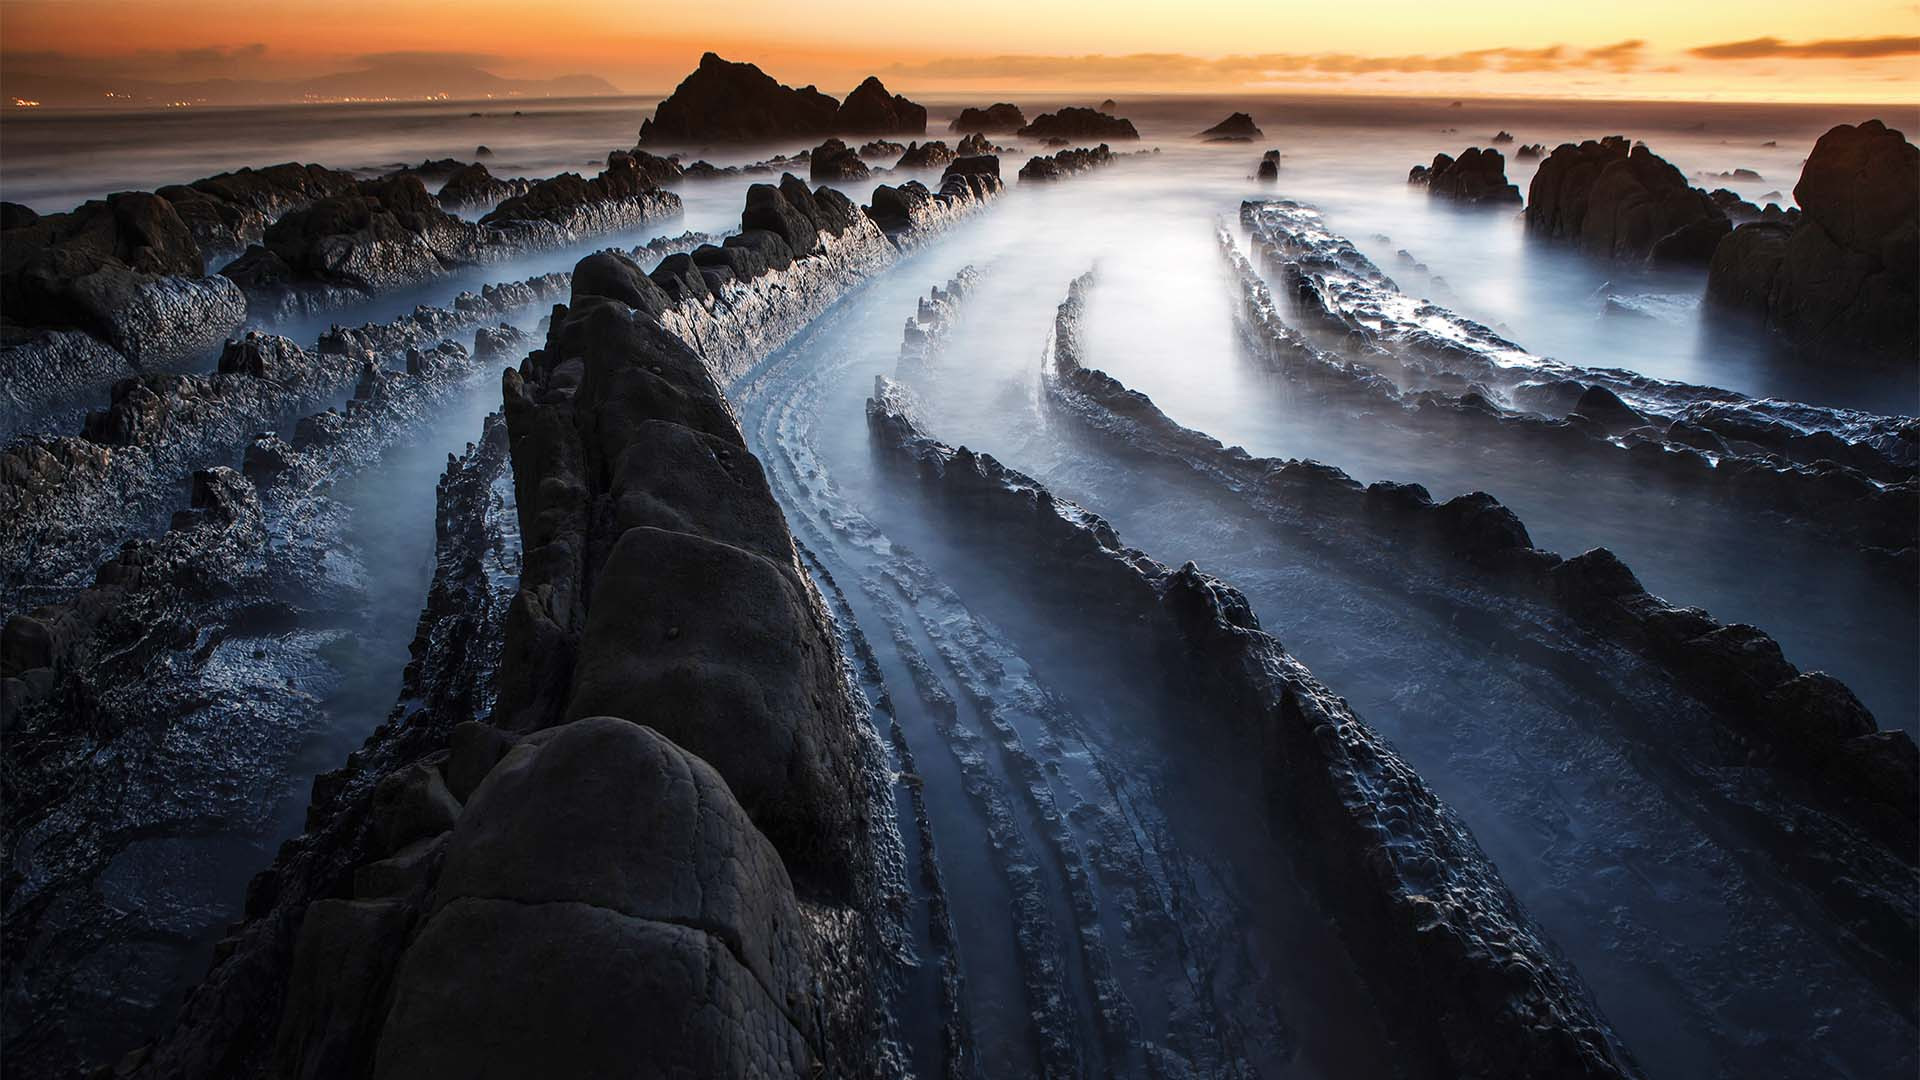 Barrika Beach, Basque Country